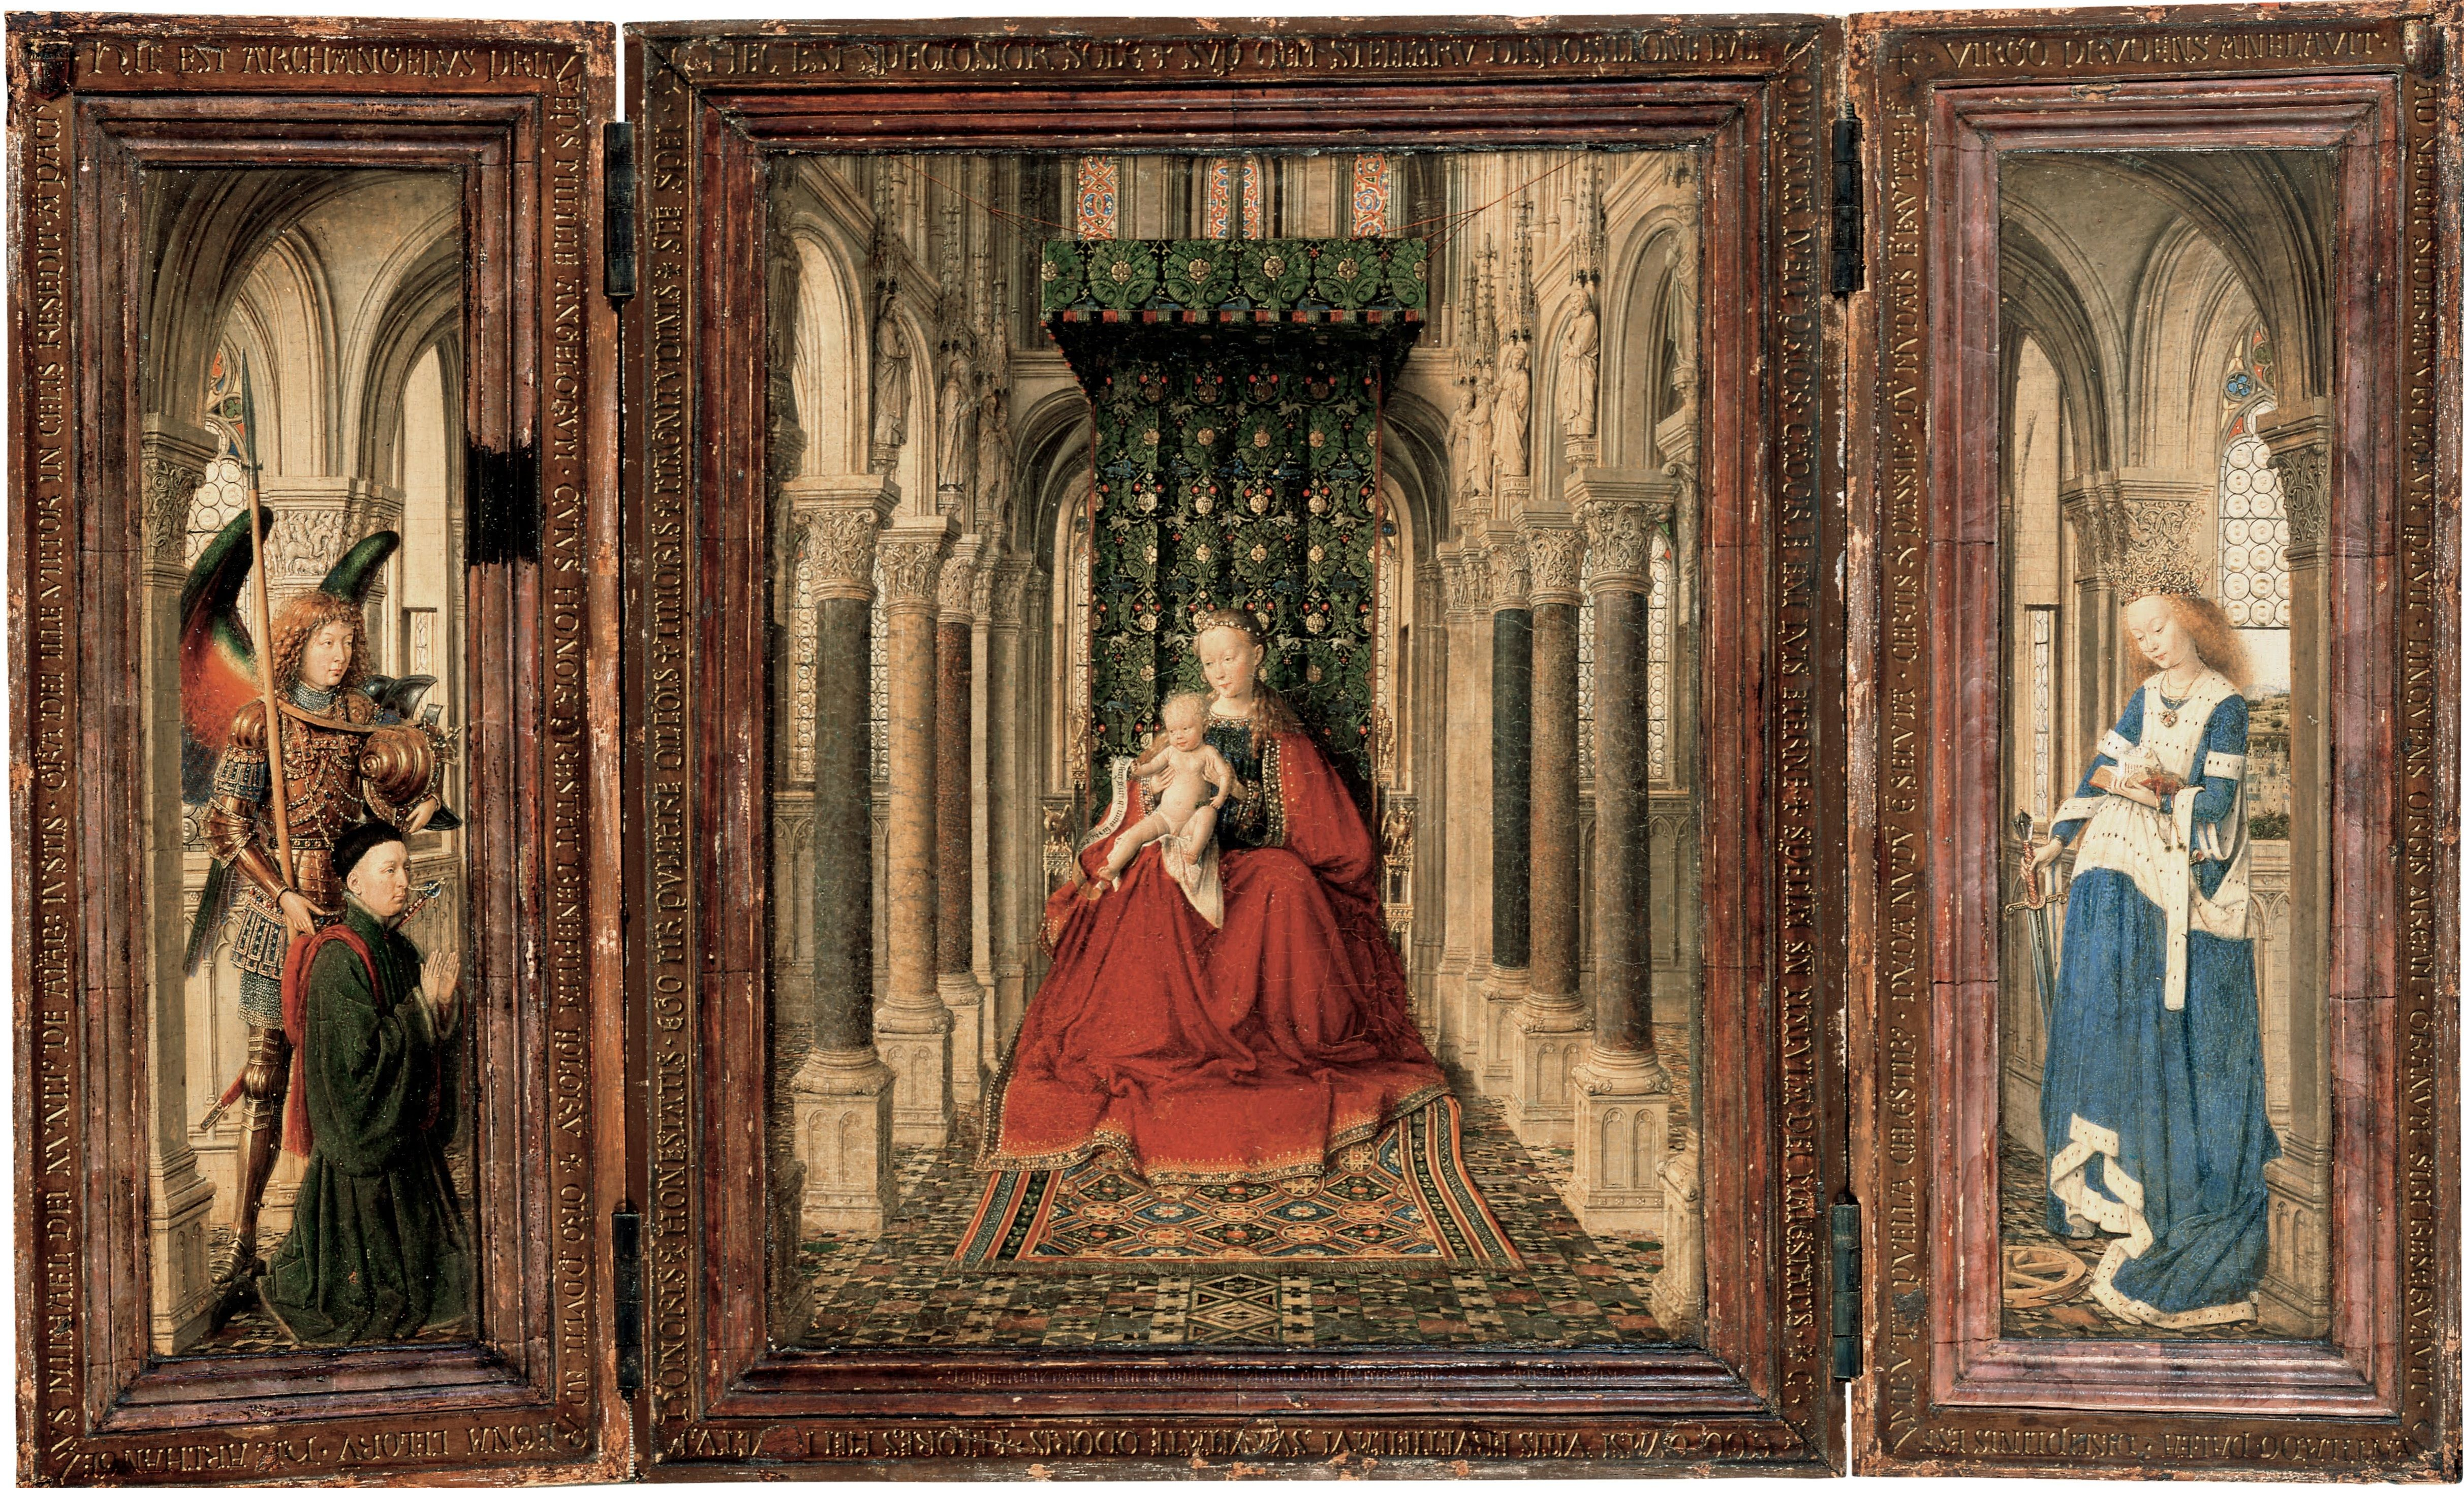 Jan Van Eyck The Dresden Triptych 1437 Gemaldegalerie Alte Meister Dresden Signed And Dated Iohannis De Eyck Jan Van Eyck Paintings Jan Van Eyck Triptych